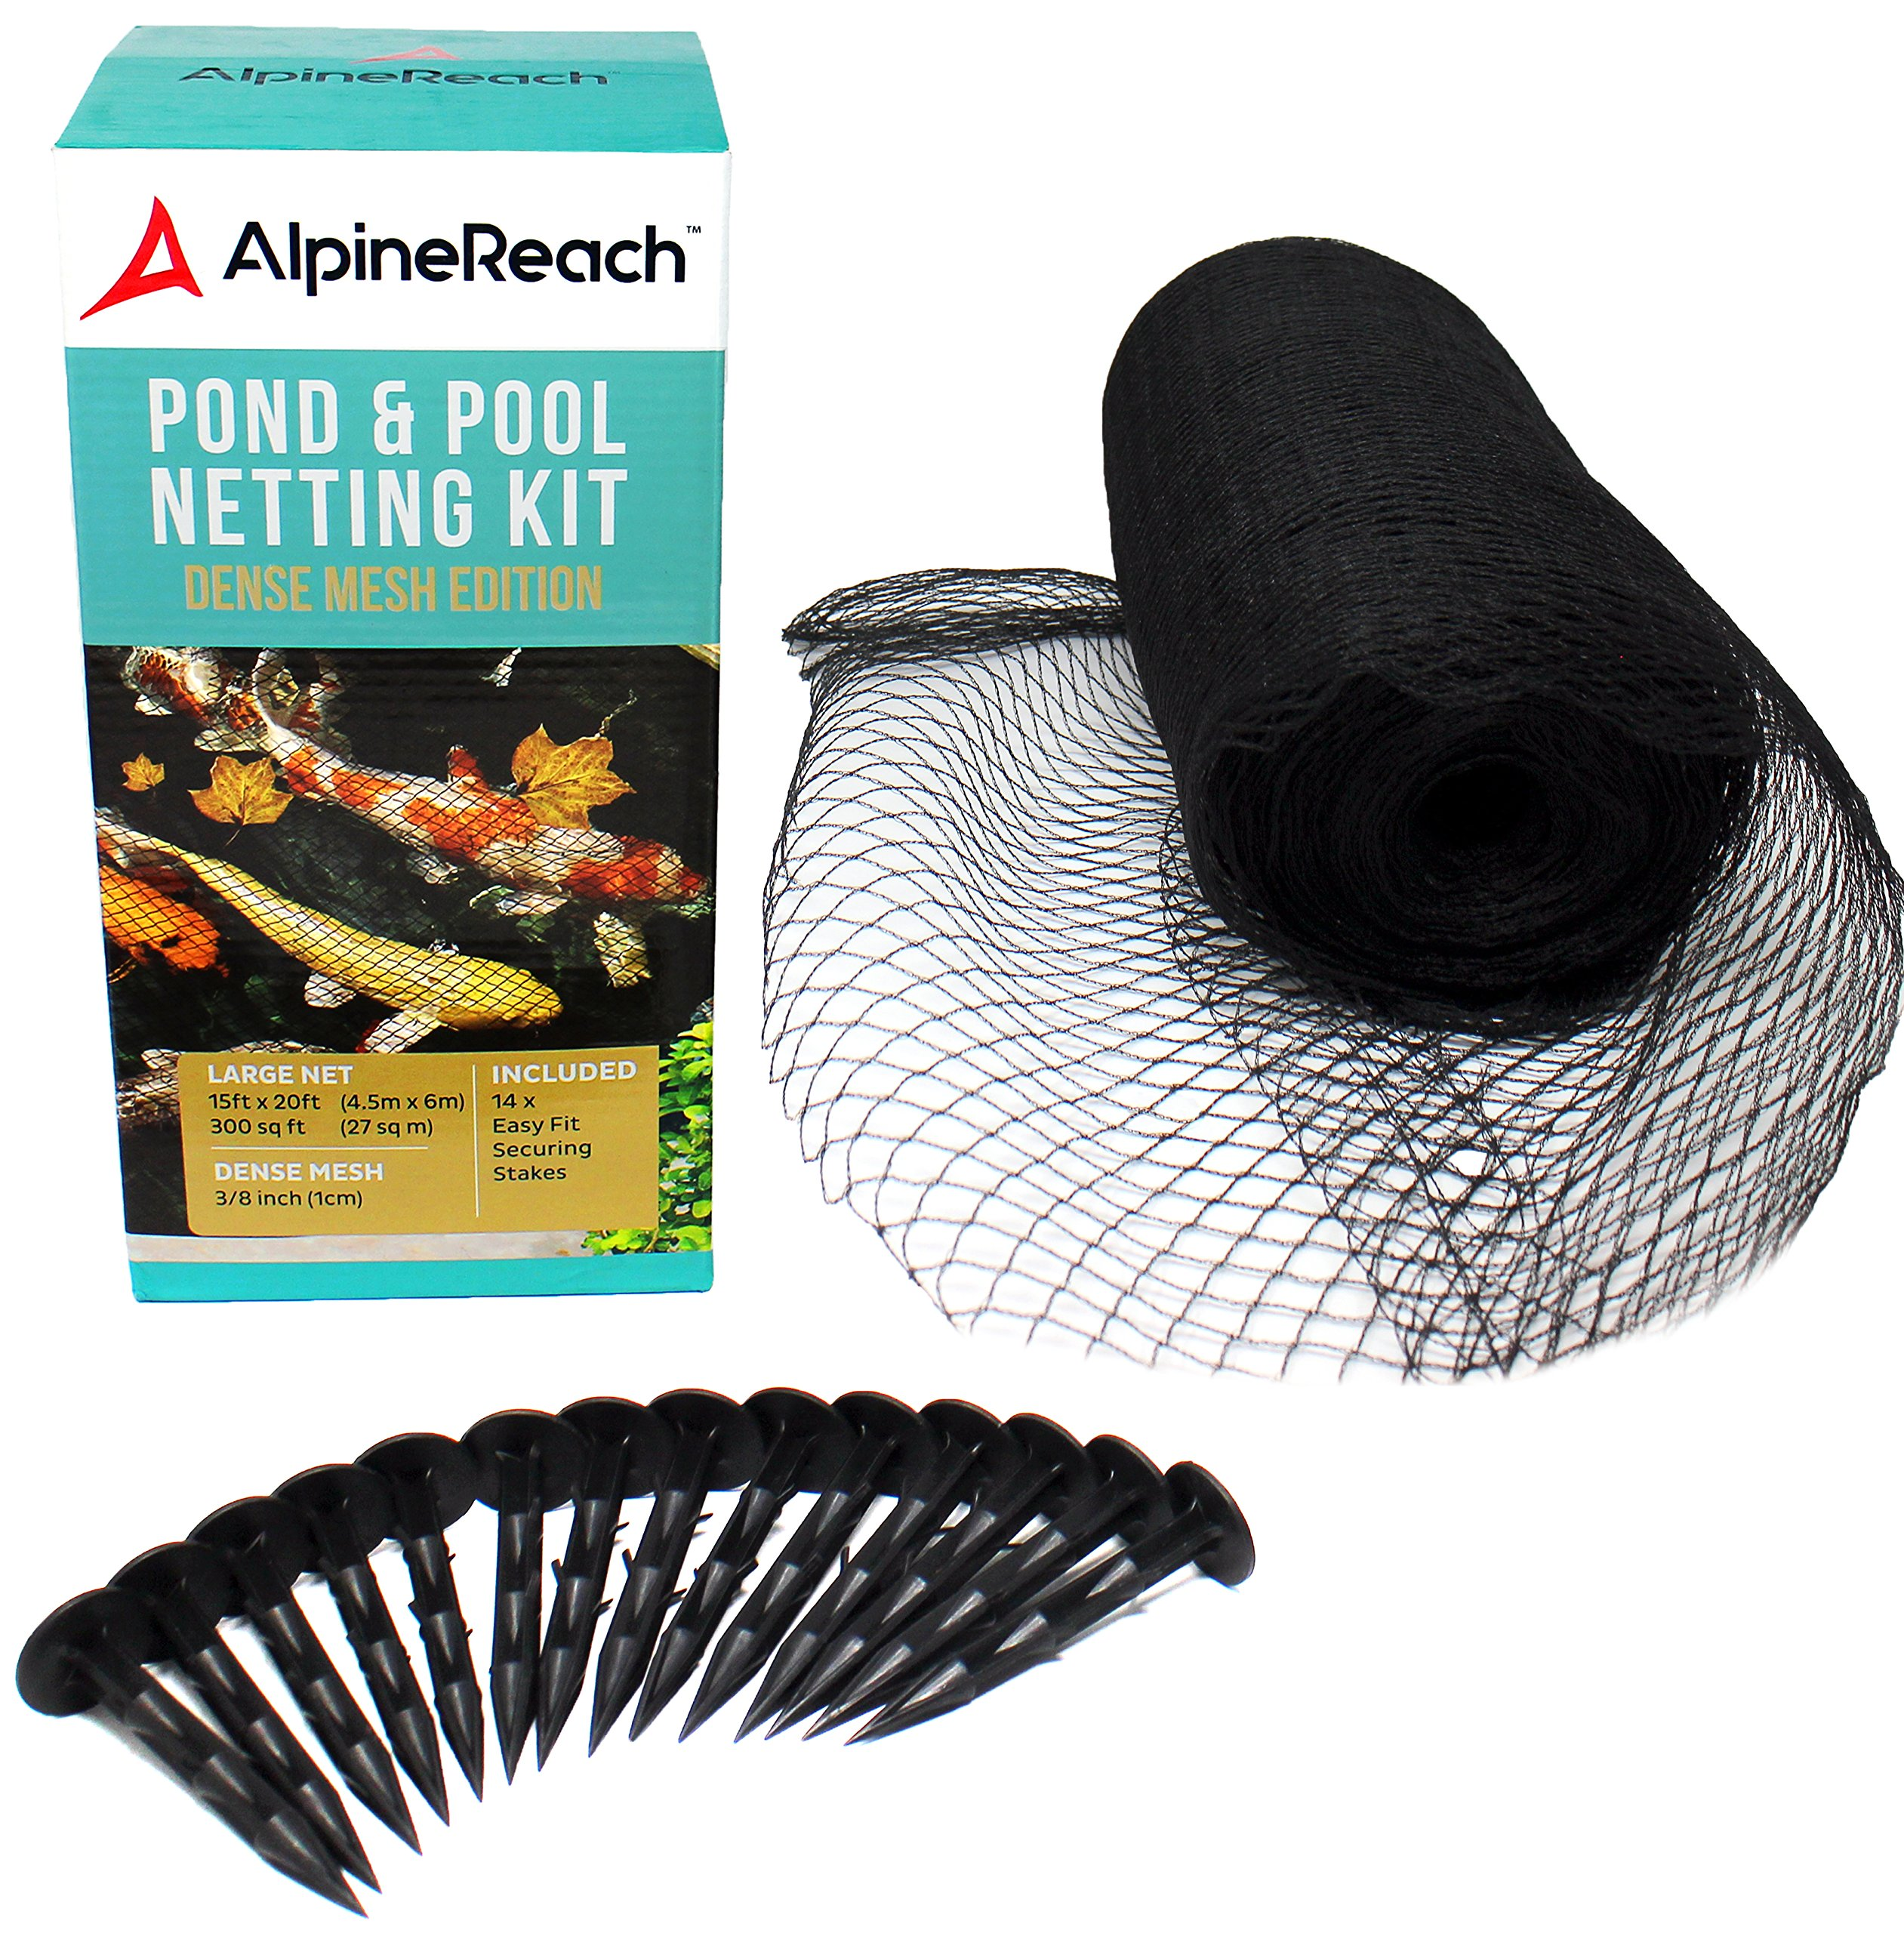 AlpineReach Pond & Pool Netting 15 x 20 ft - Dense Fine Mesh Heavy Duty Net | Cover for Leaves | Protects Koi Fish from Birds, Blue Heron, Cats, Predators UV Protection All Accessories Stakes Included